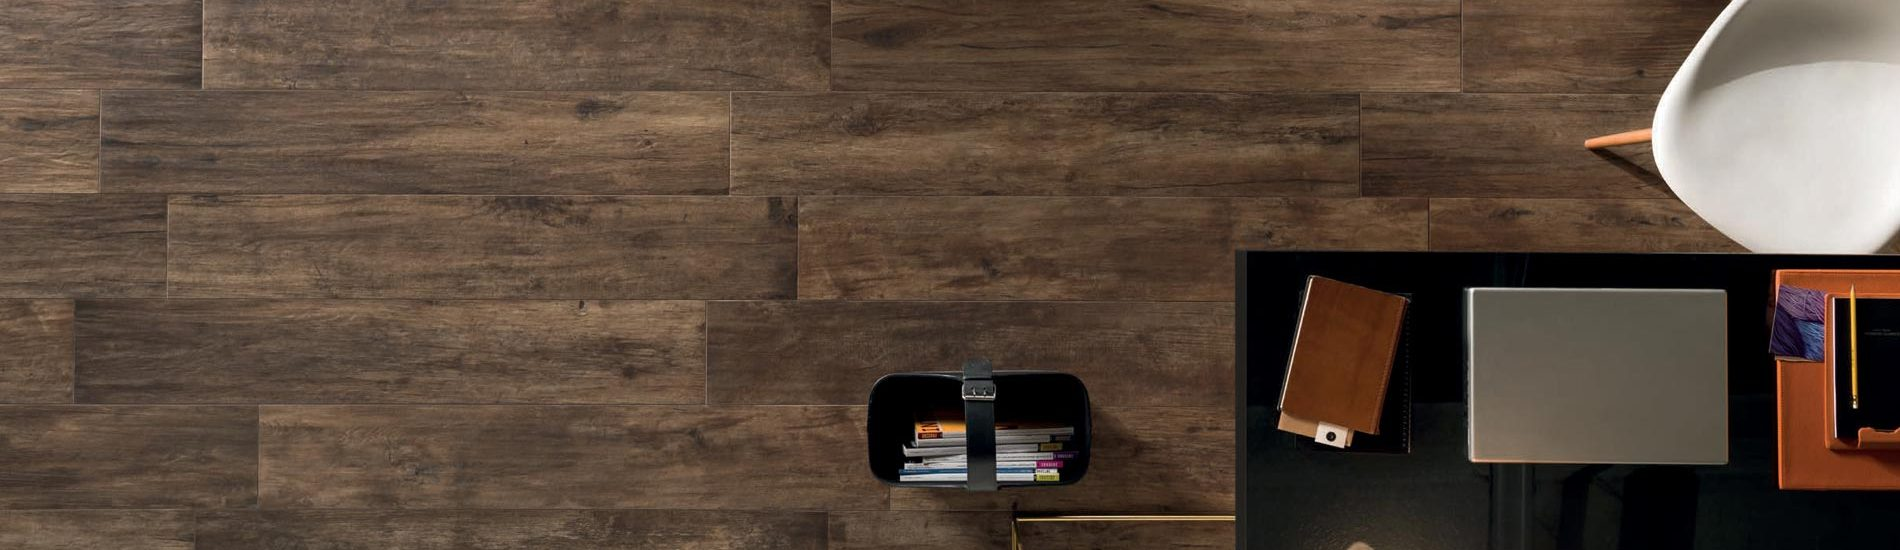 banner-slowood-wood-look-floor-wall-tile-polis